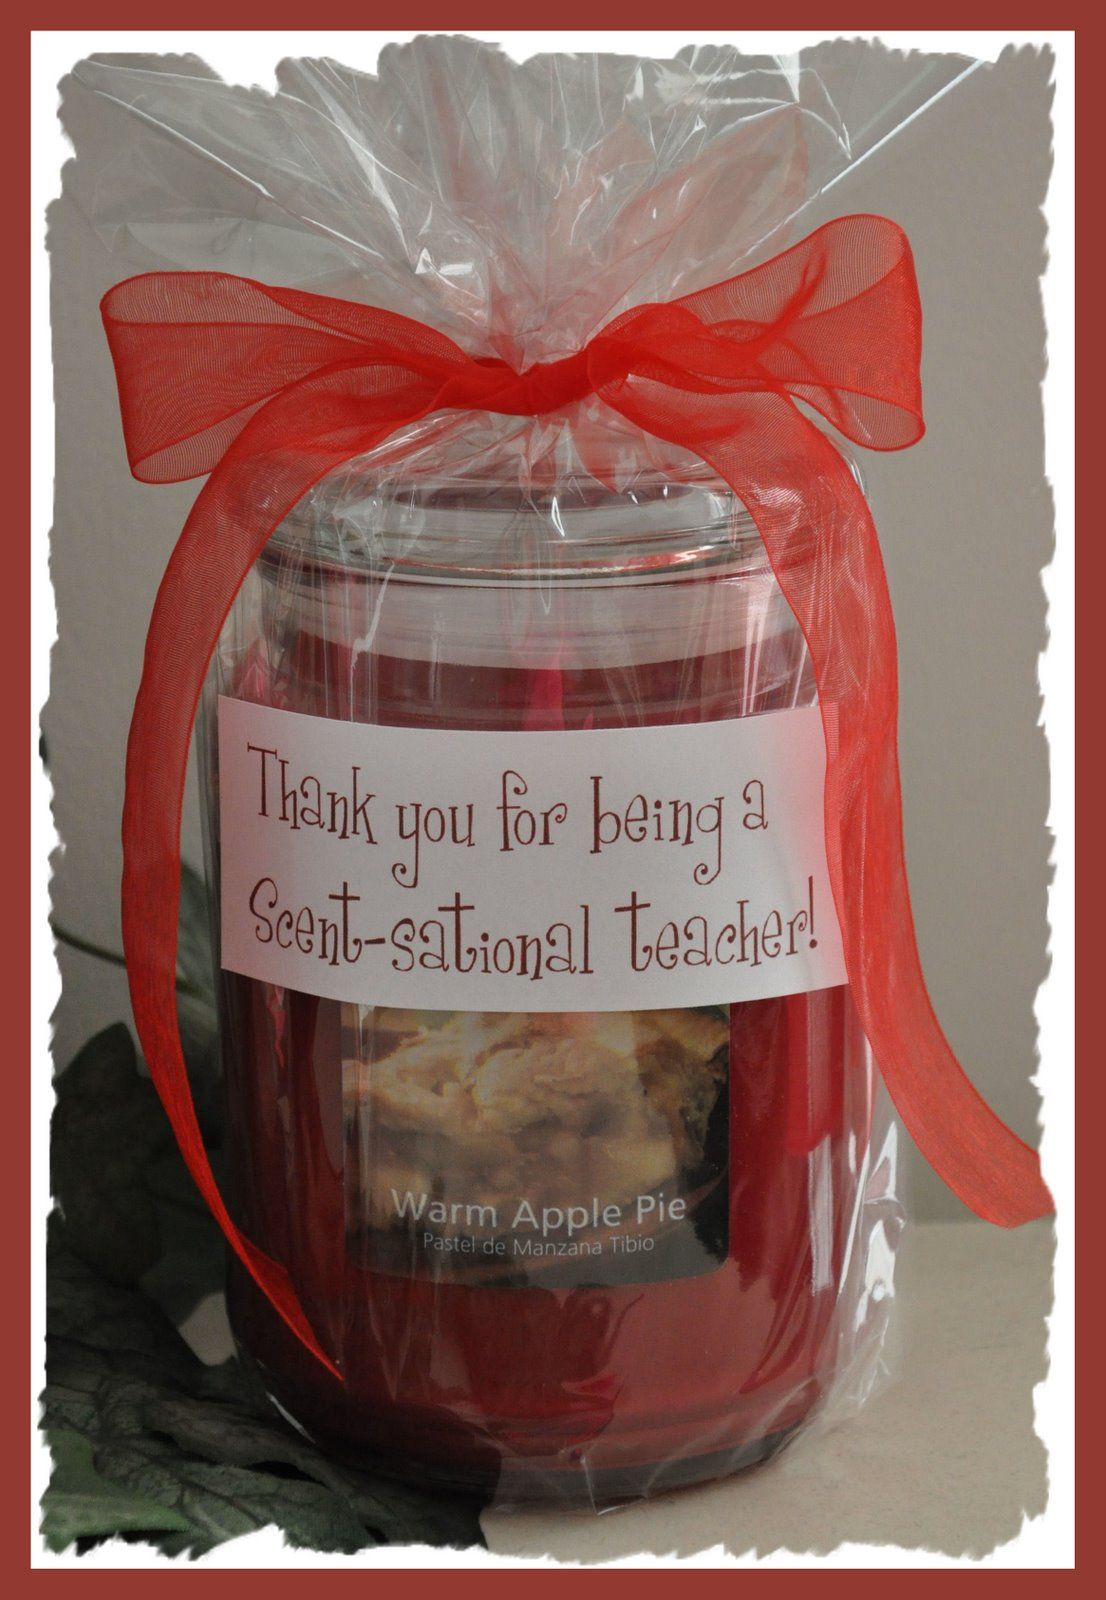 Can Be Used For Any Occasion Wrap A Scented Candle In Cellophane And Tie It With Ribbon Then Print The Saying Thank You Being Scent Sational